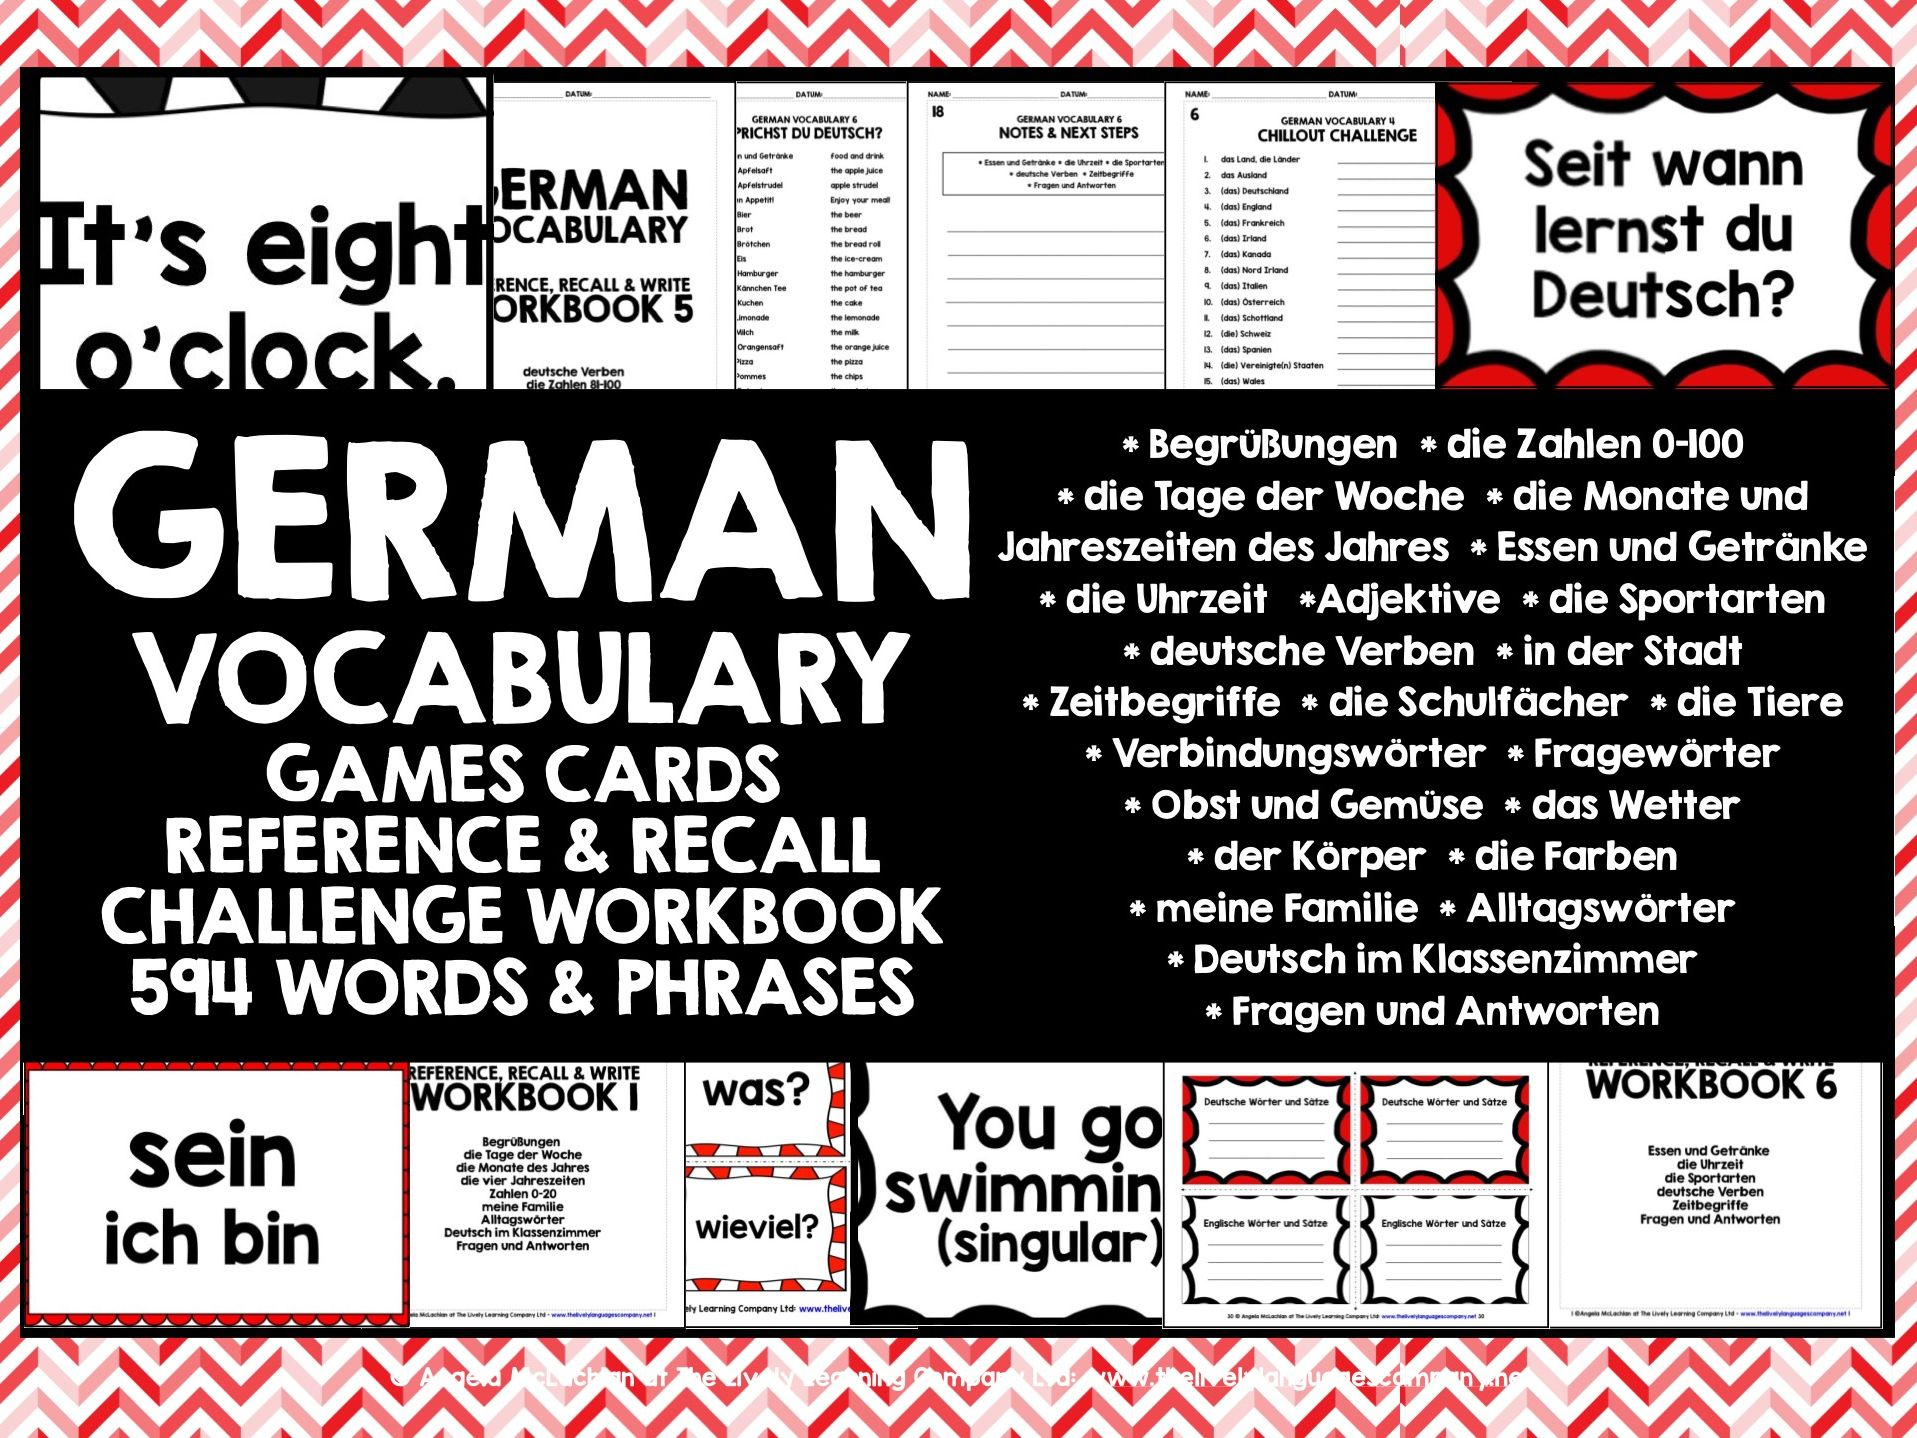 GERMAN VOCABULARY CARDS WITH REFERENCE & RECALL WORKBOOKS #2